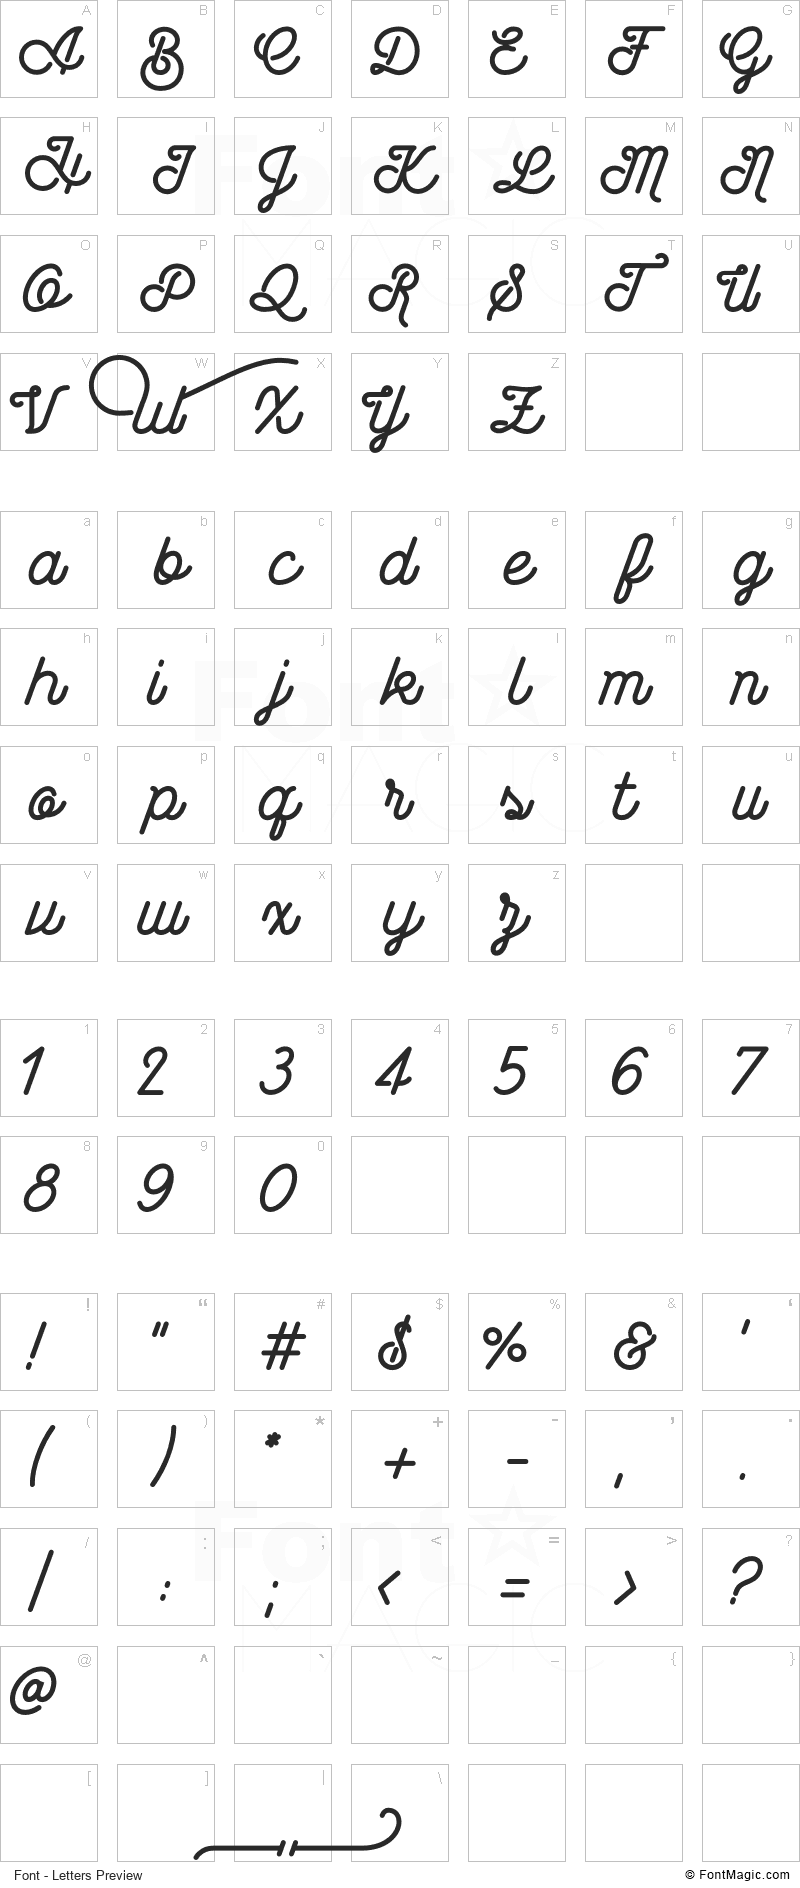 Wasted Font - All Latters Preview Chart